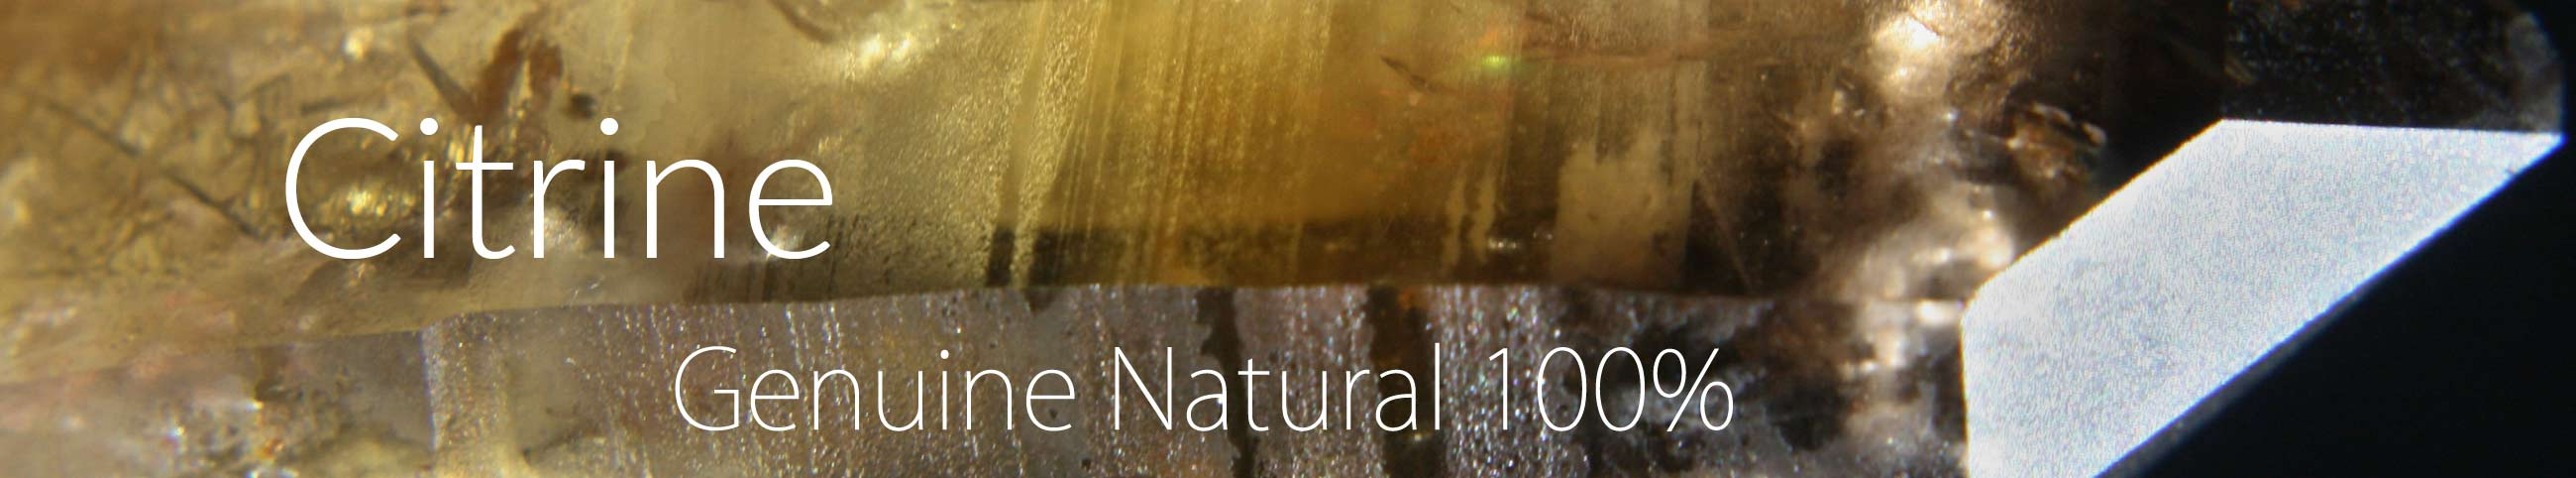 Genuine Natural Citrine Crystals